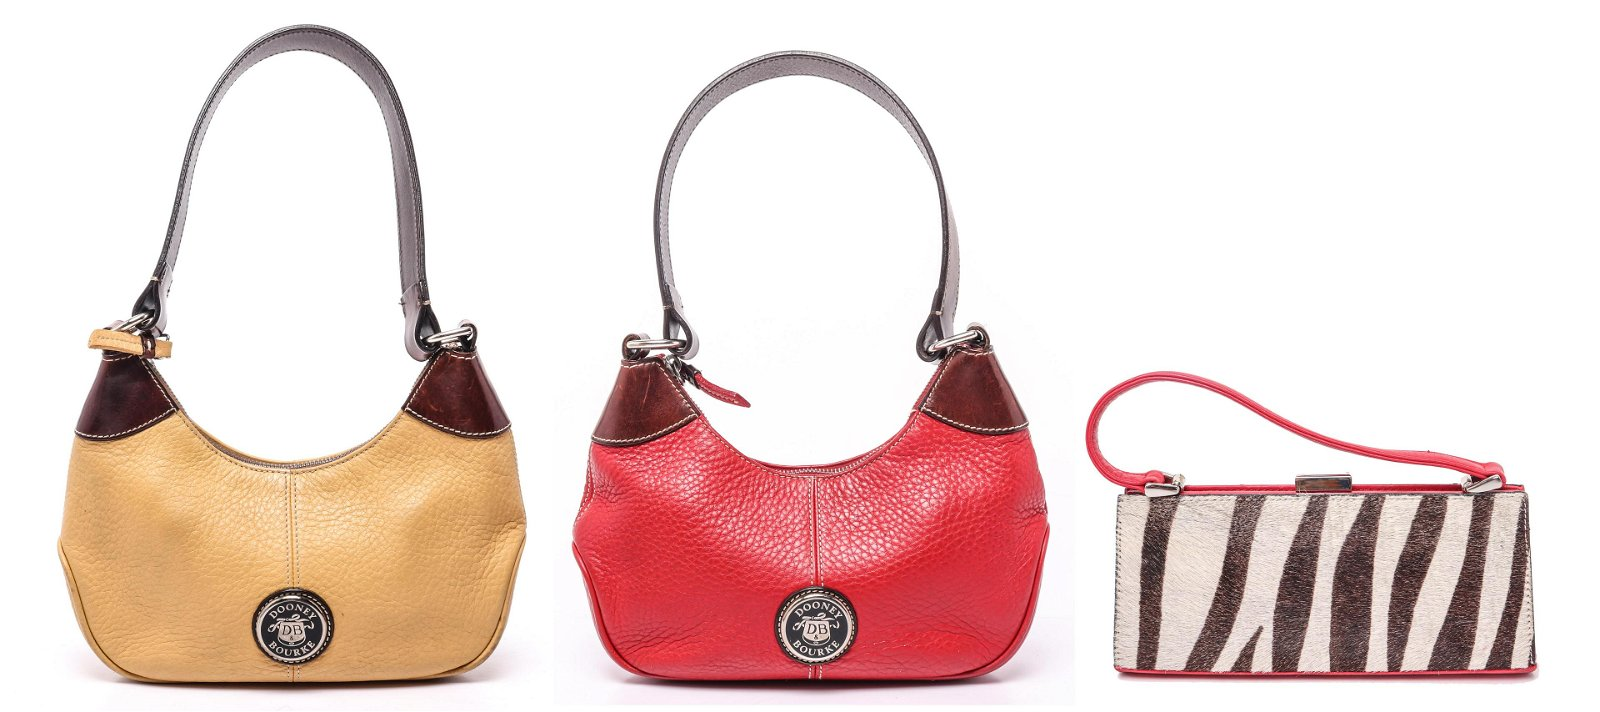 Adrienne Vittadini & Dooney and Bourke Bags, 3